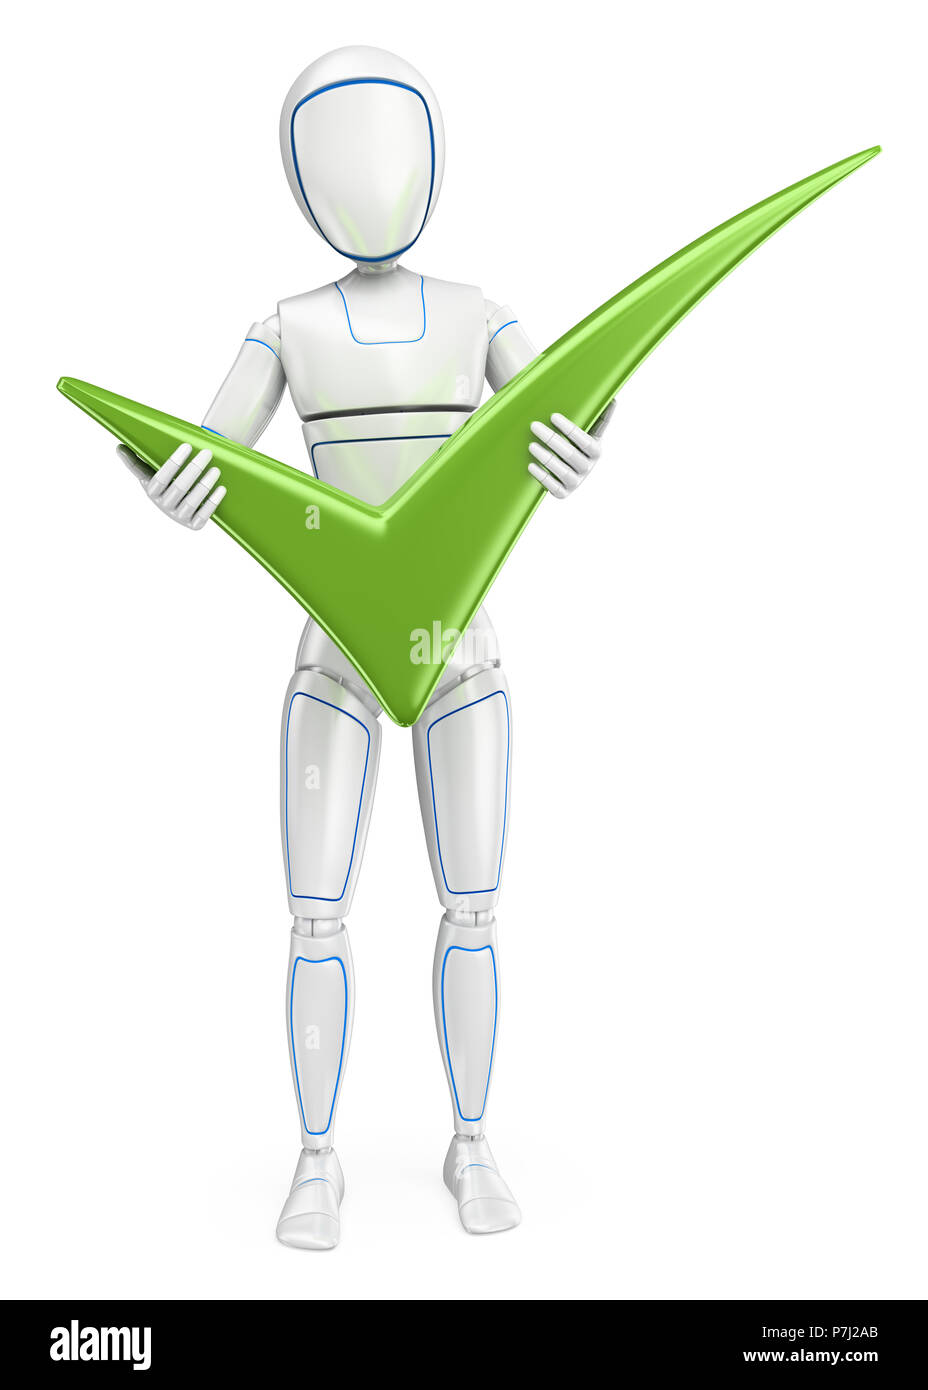 3d futuristic android illustration. Humanoid robot standing with a big green tick. Isolated white background. - Stock Image